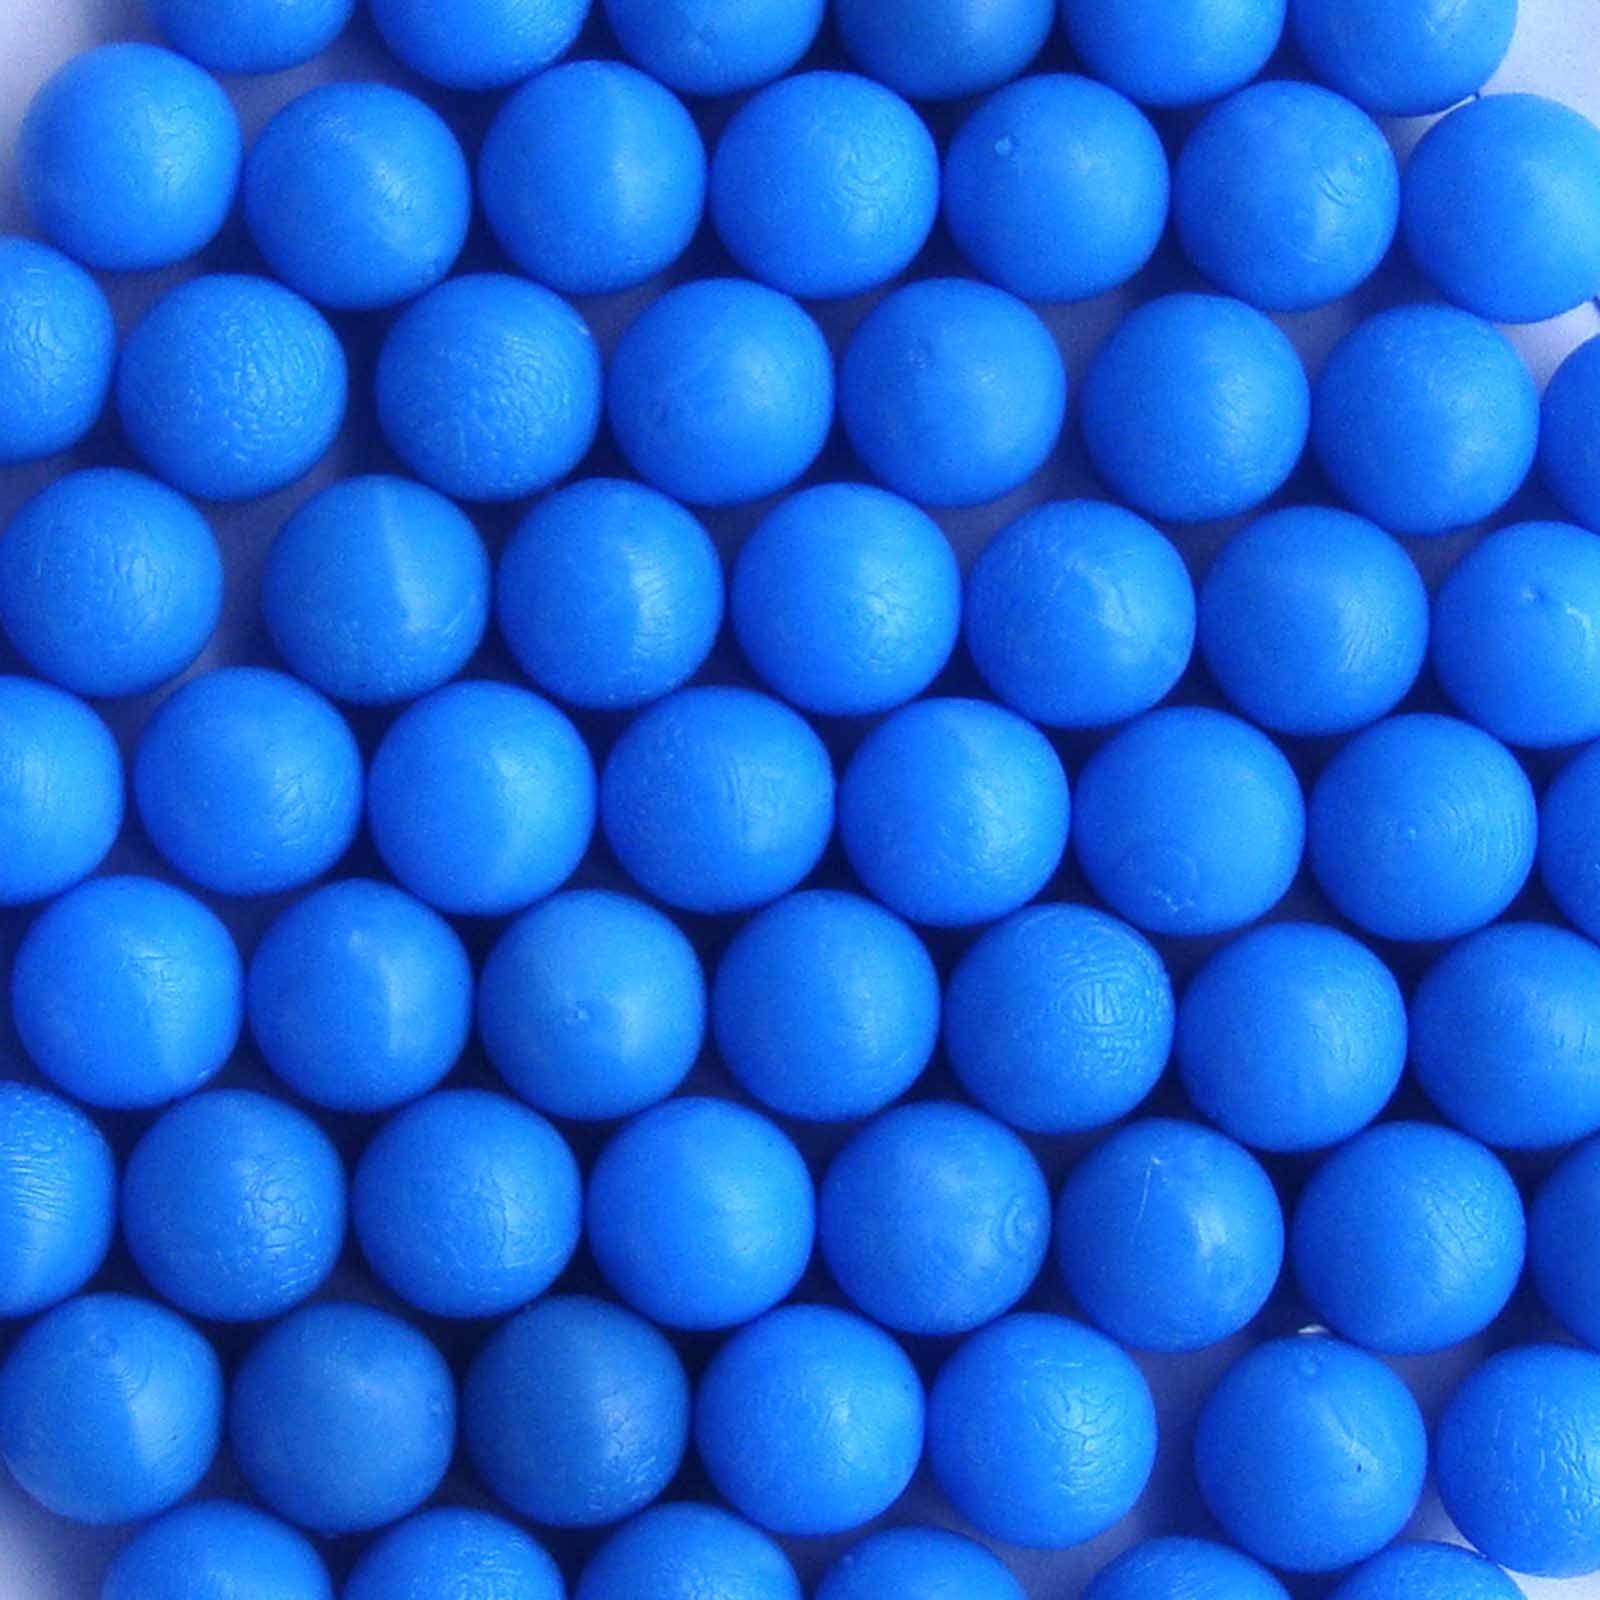 50 New .68 Cal Reusable Rubber Training Balls Paintballs Blue Color by GFSP Outdoor Sports